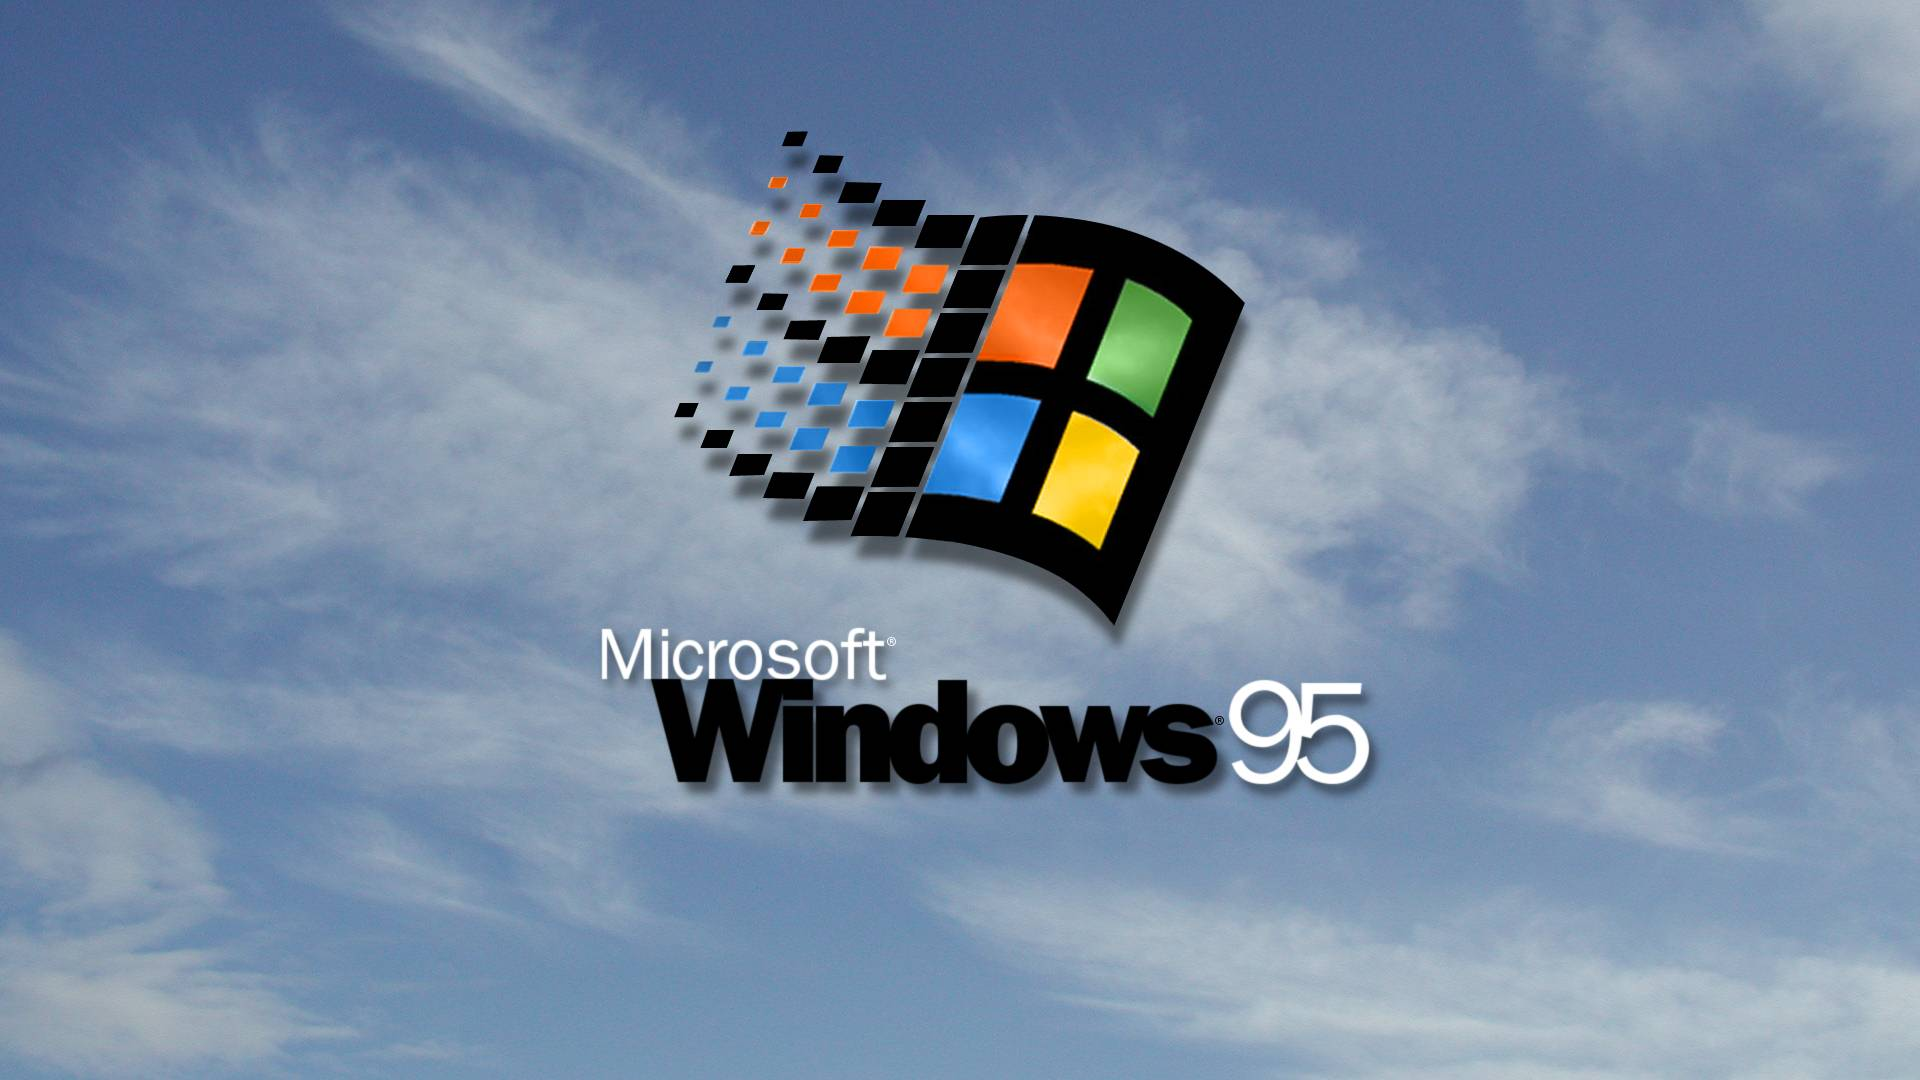 Windows 95 Wallpapers Top Free Windows 95 Backgrounds